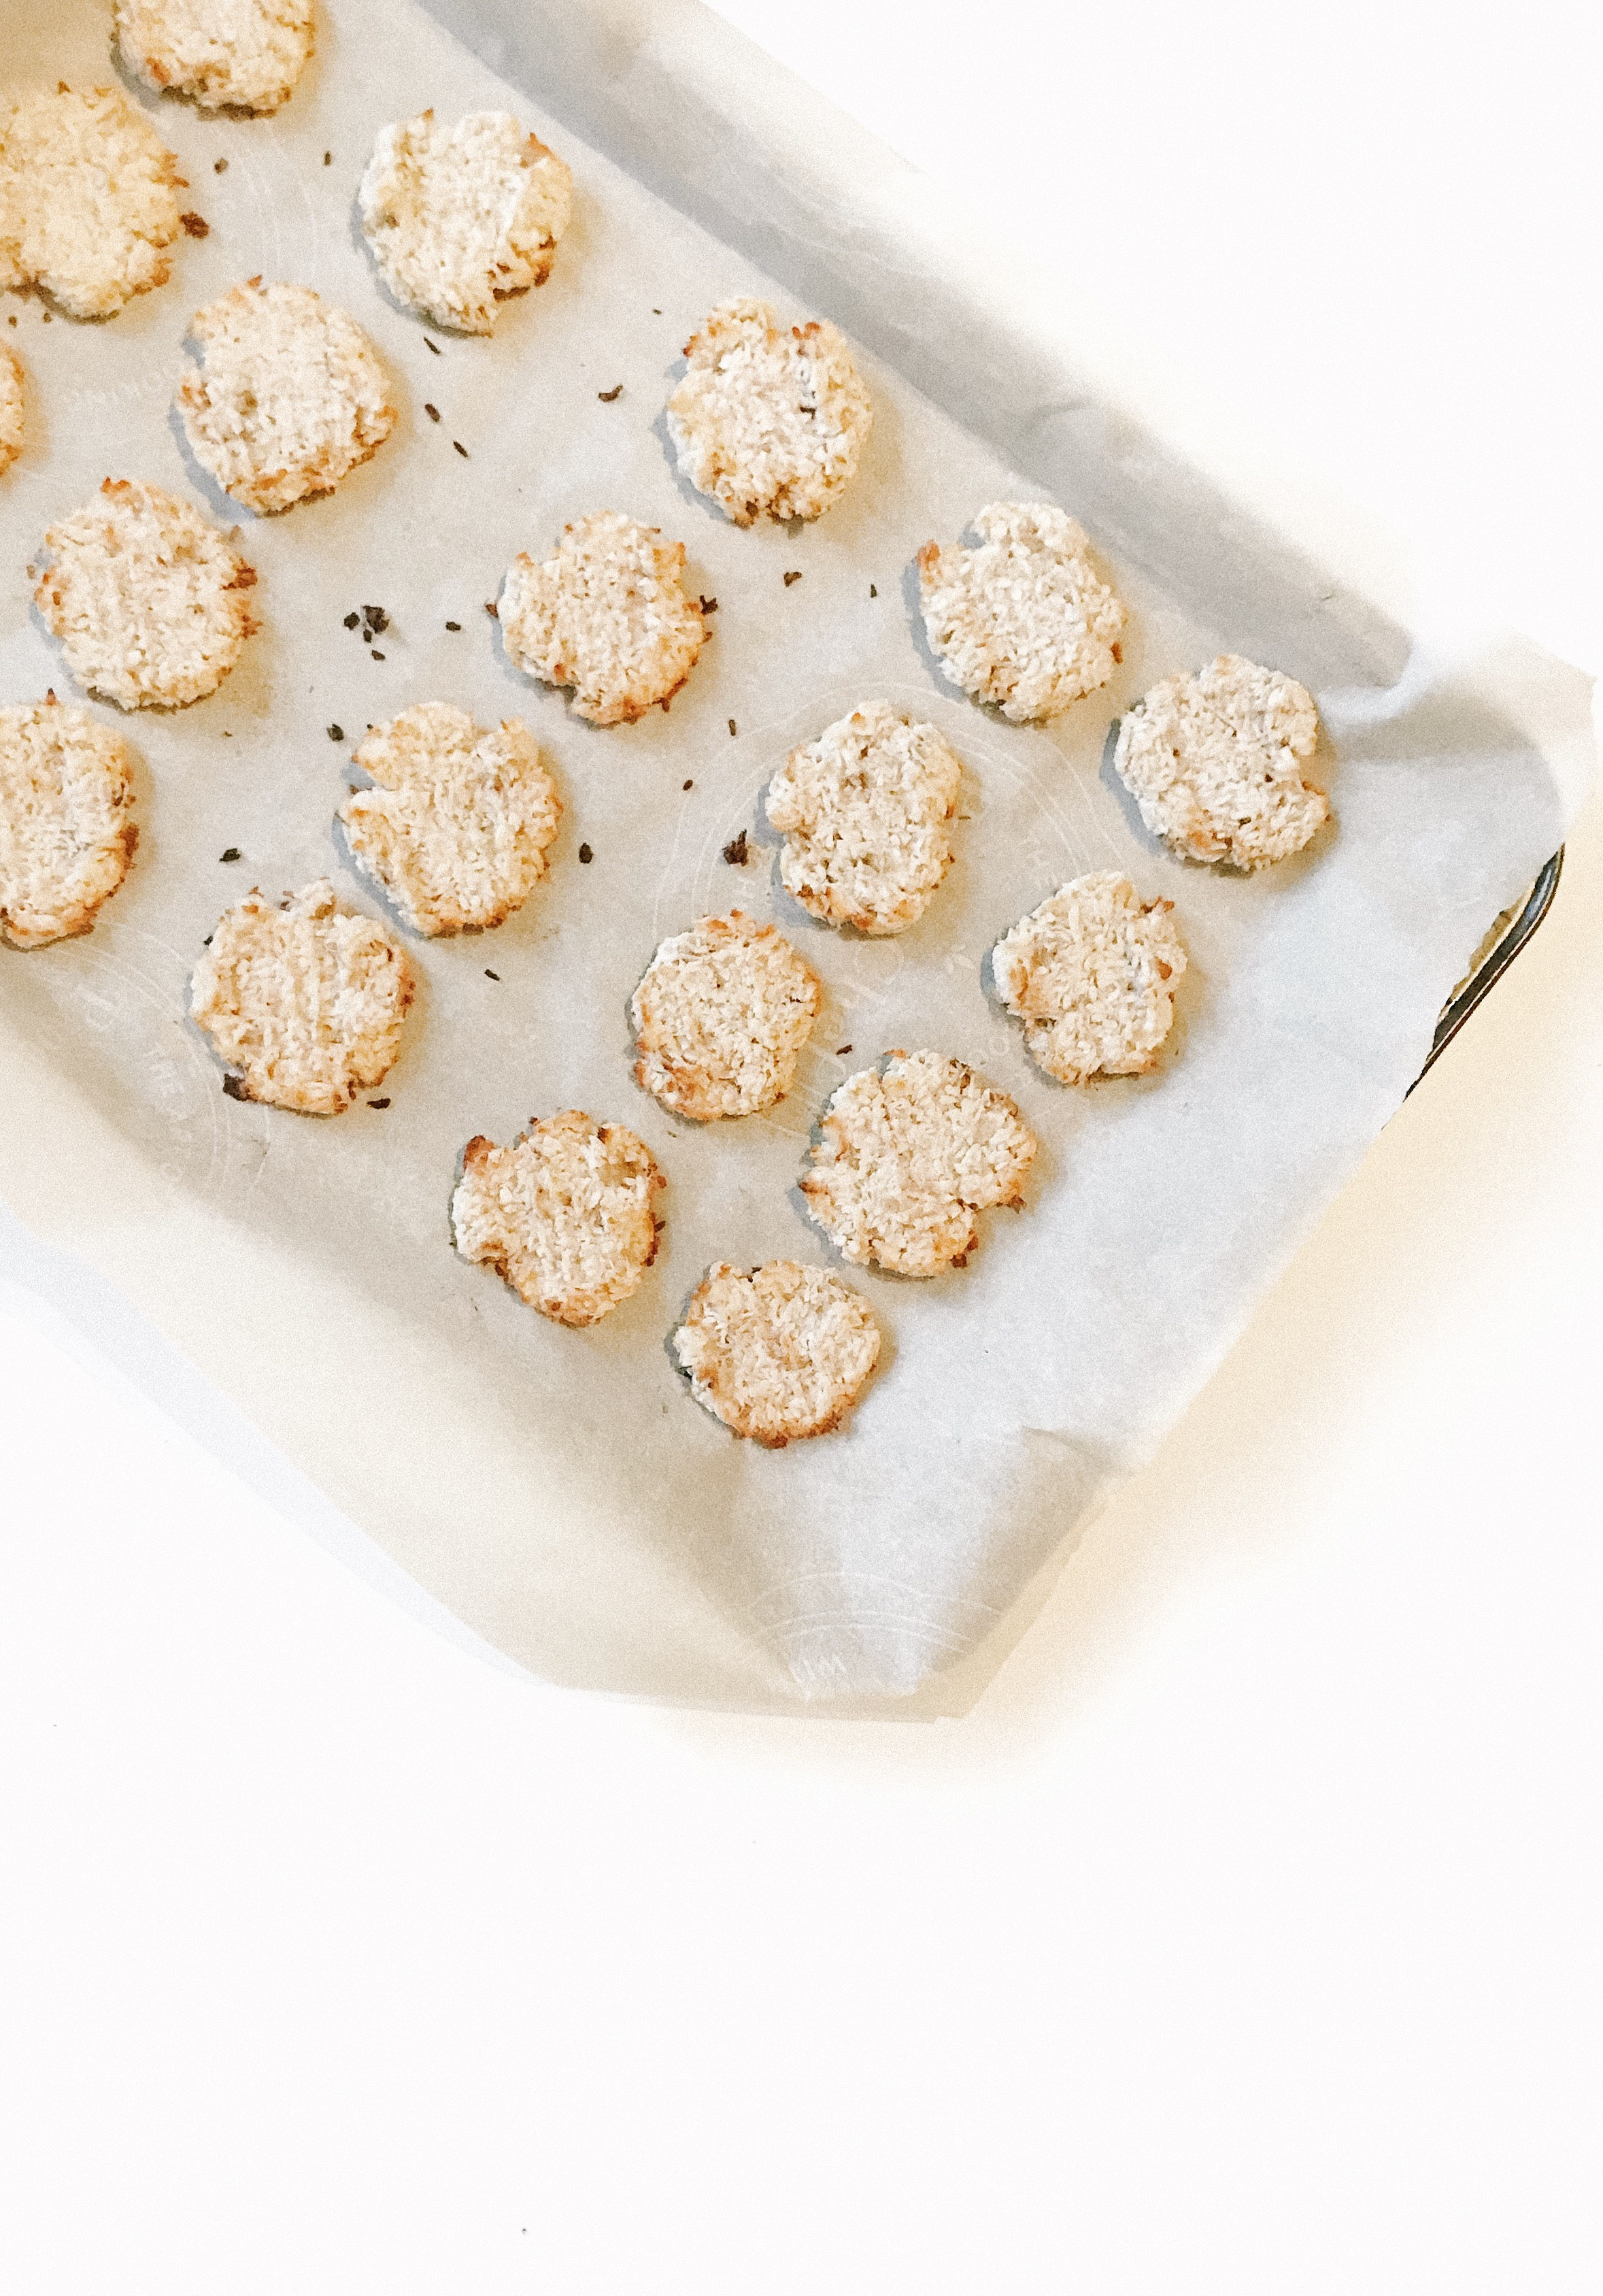 3 Ingredient Coconut Cookies (AIP, GAPS, Paleo, Gluten-Free, Dairy-Free, Egg-Free, Nut-Free) - This is a perfect snack recipe for anyone trying to stay healthy on-the-go! It is quick and easy! Kids can take them to school! You can throw them in your purse! They're the perfect craving buster that won't take you off of your healing protocol.